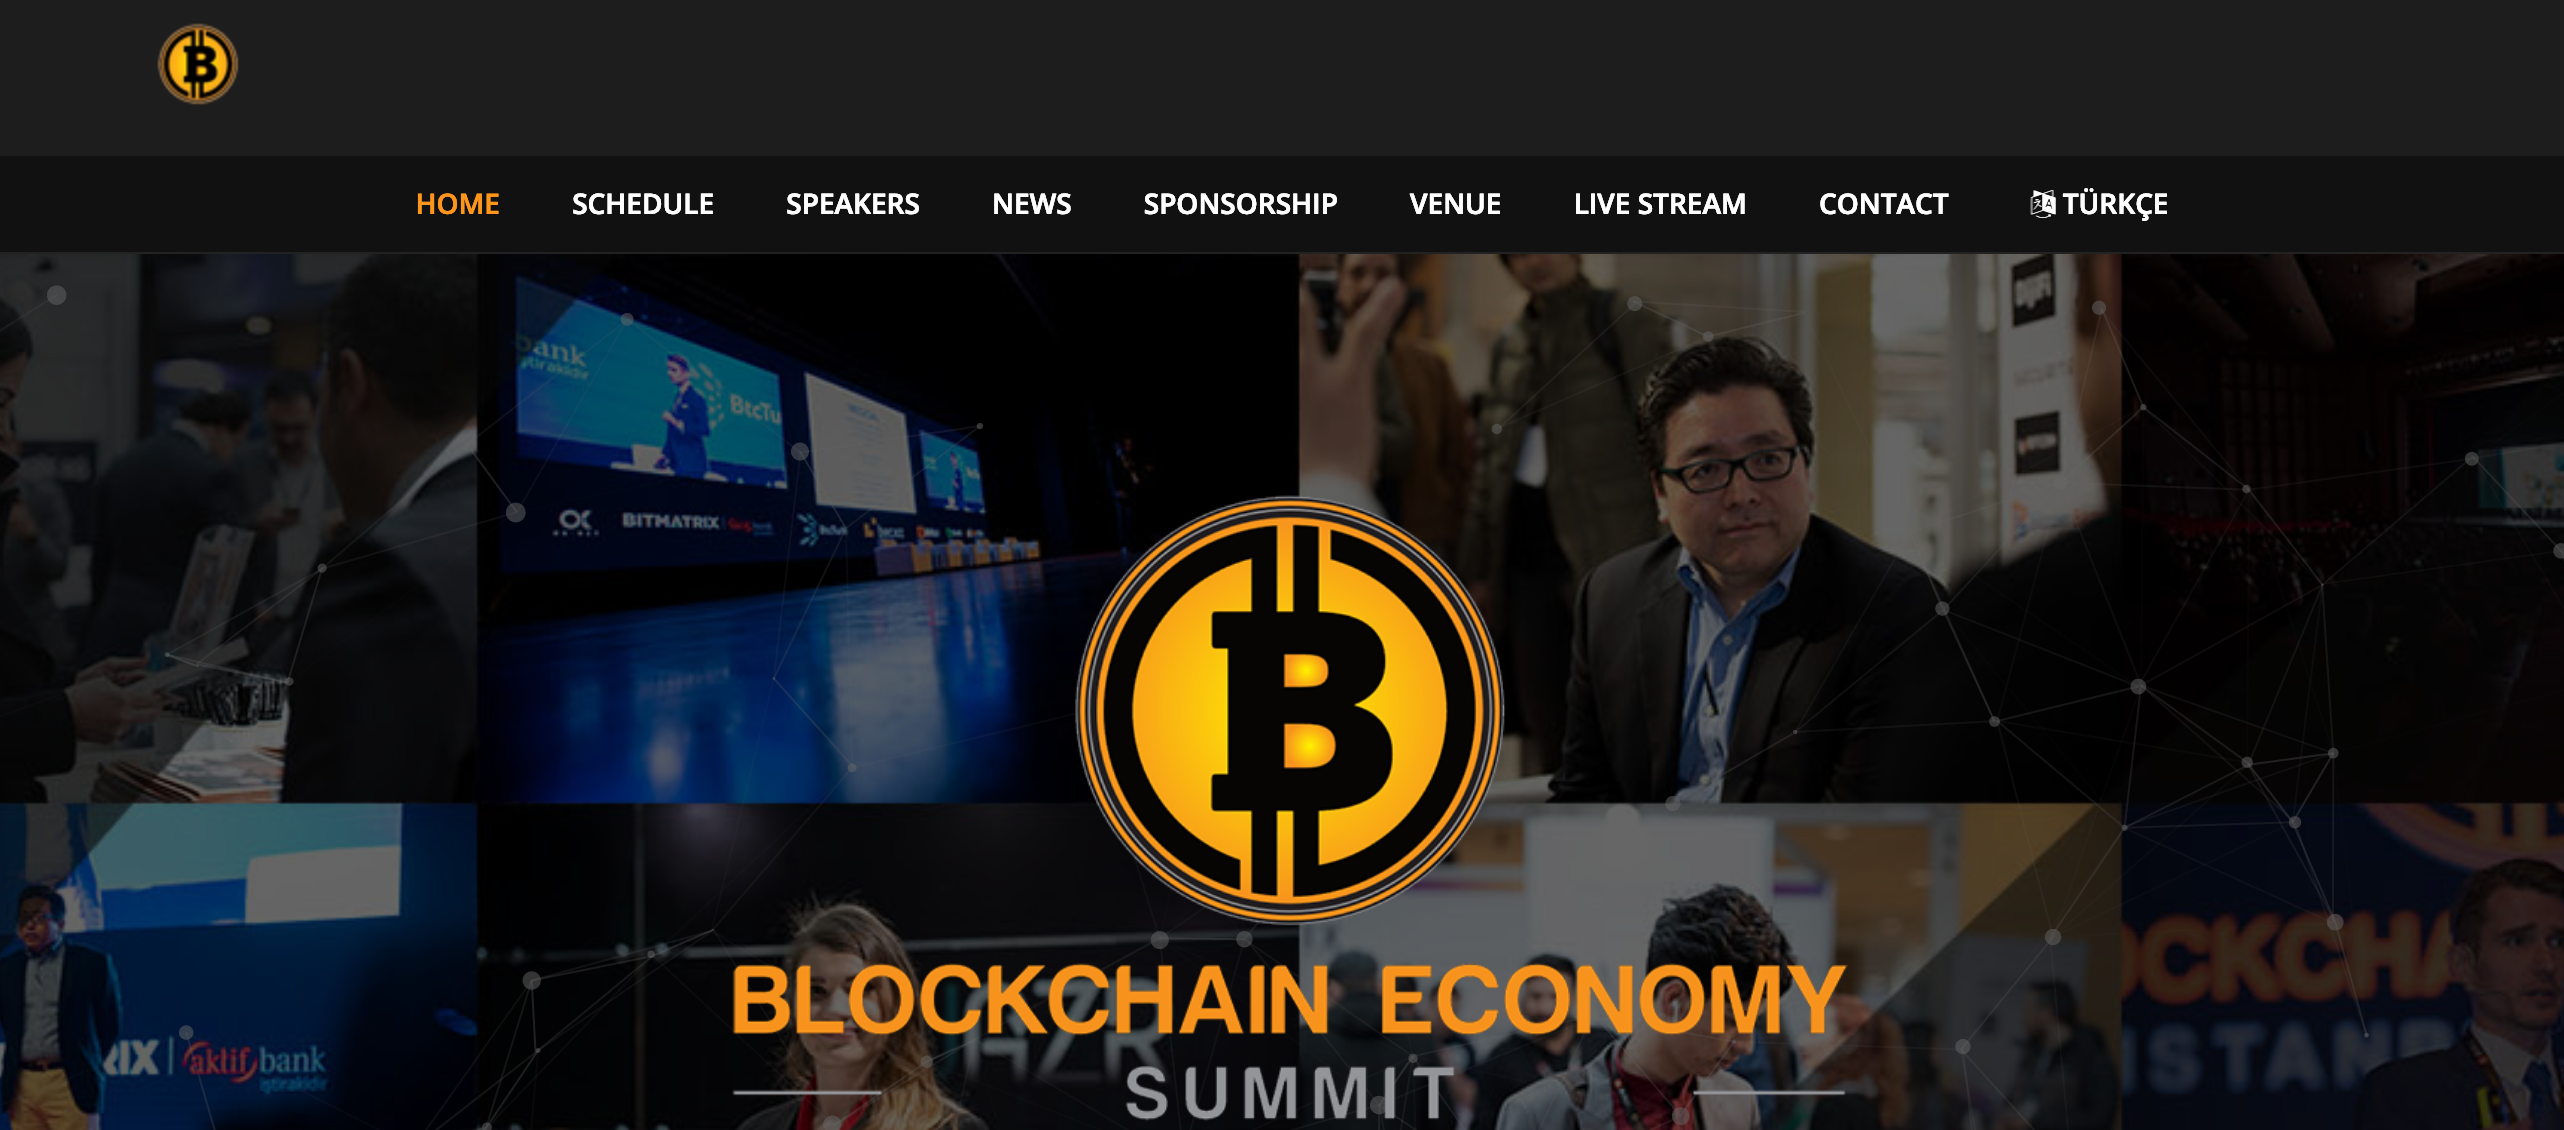 Turkey | Blockchain Economy Summit